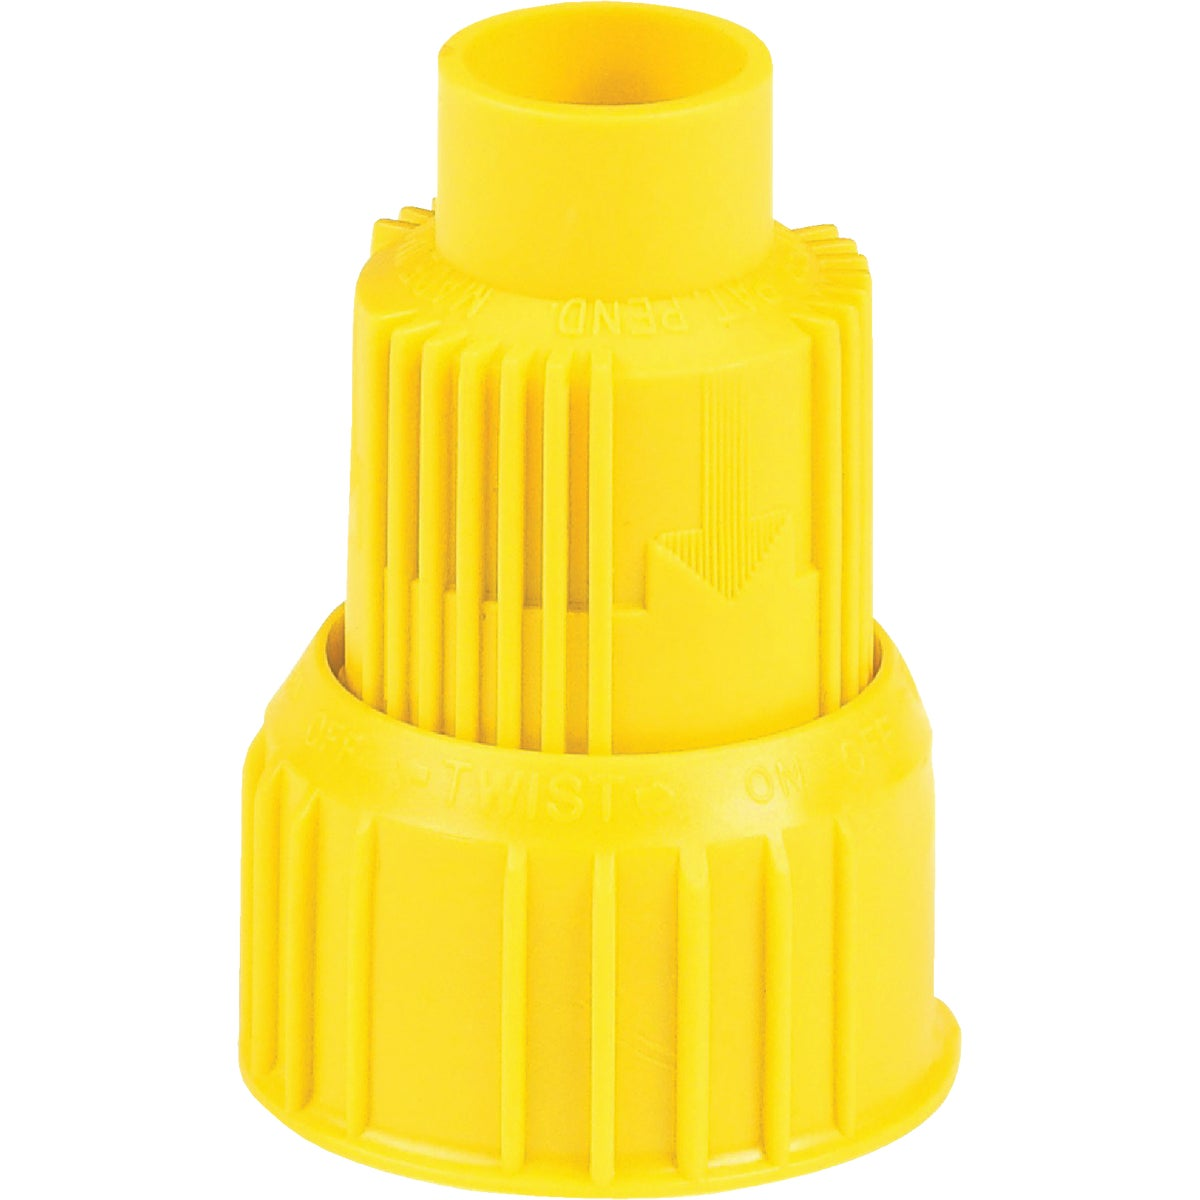 ANTI/WINDOW WASHER SPOUT - 10101WB by Hopkins Mfg Corp